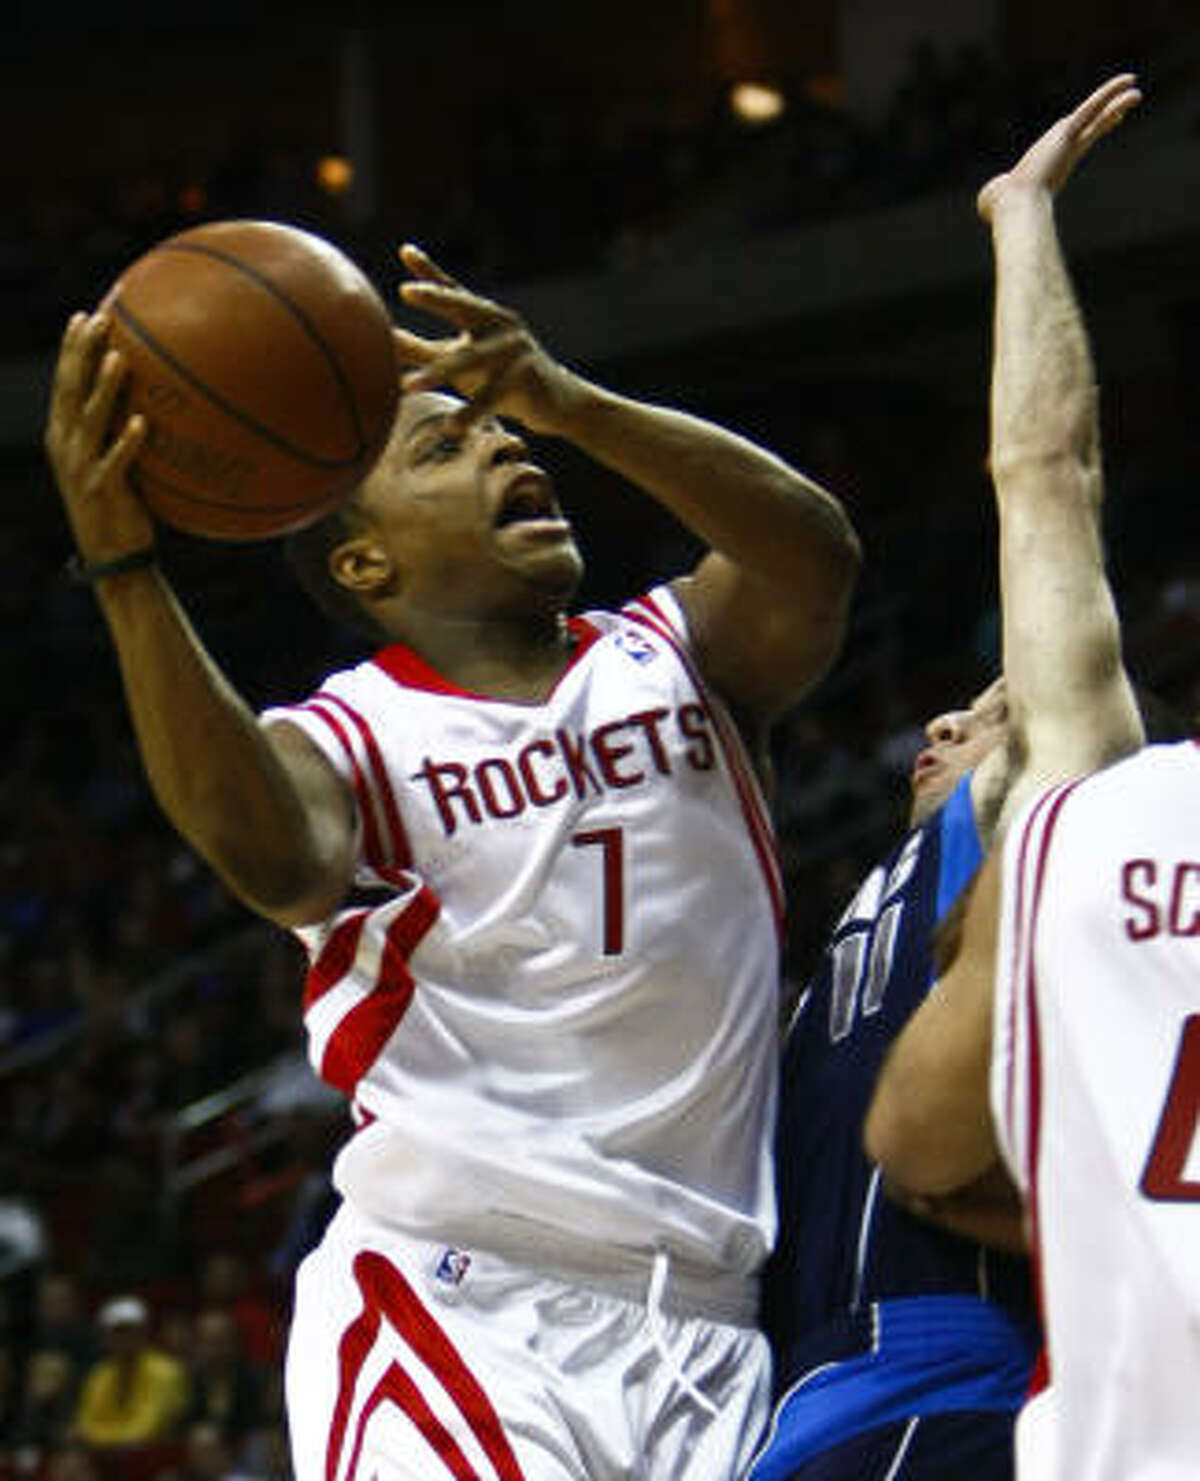 Newly acquired Rockets guard Kyle Lowry drives to the basket in the fourth quarter.